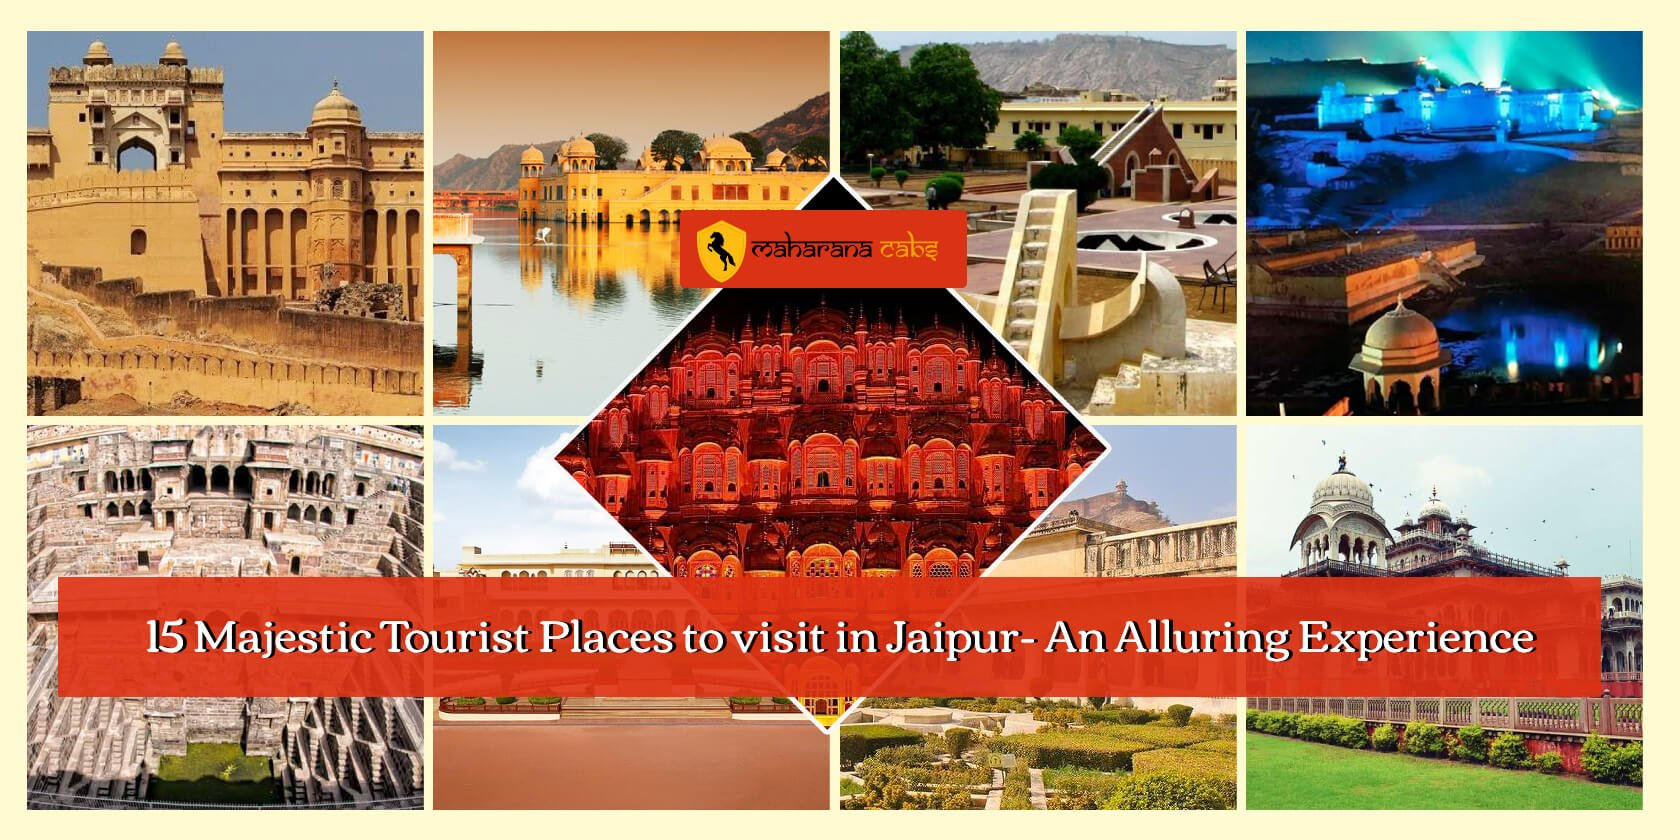 15 Majestic Tourist Places to visit in Jaipur